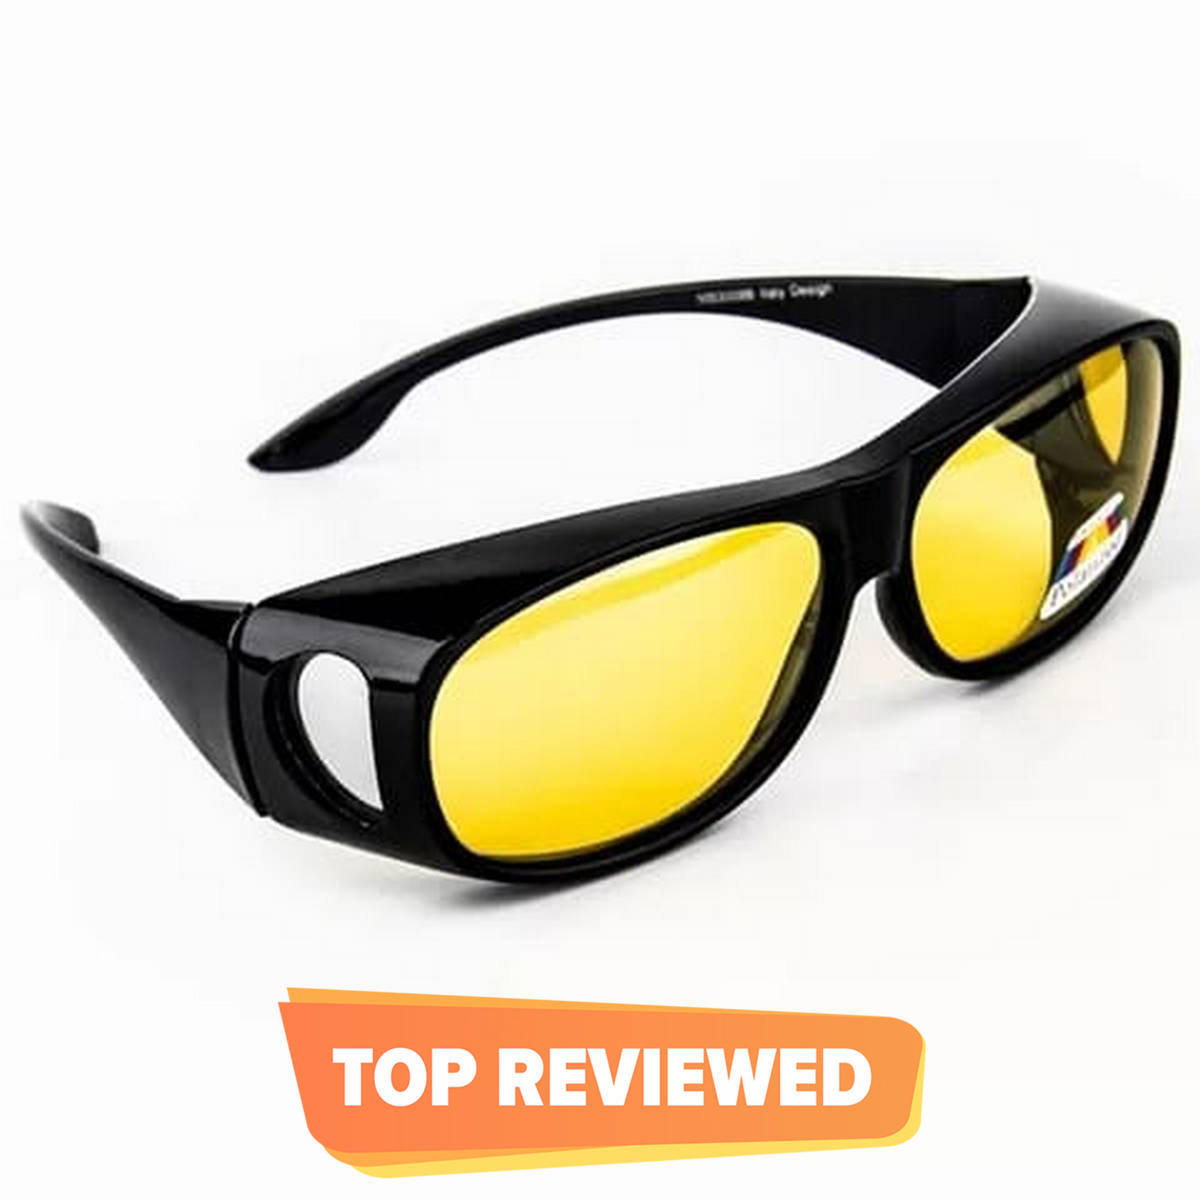 HD day night vision polarizing glasses for bike and car drivers – Anti glare polarized night driving uv protection driving glasses